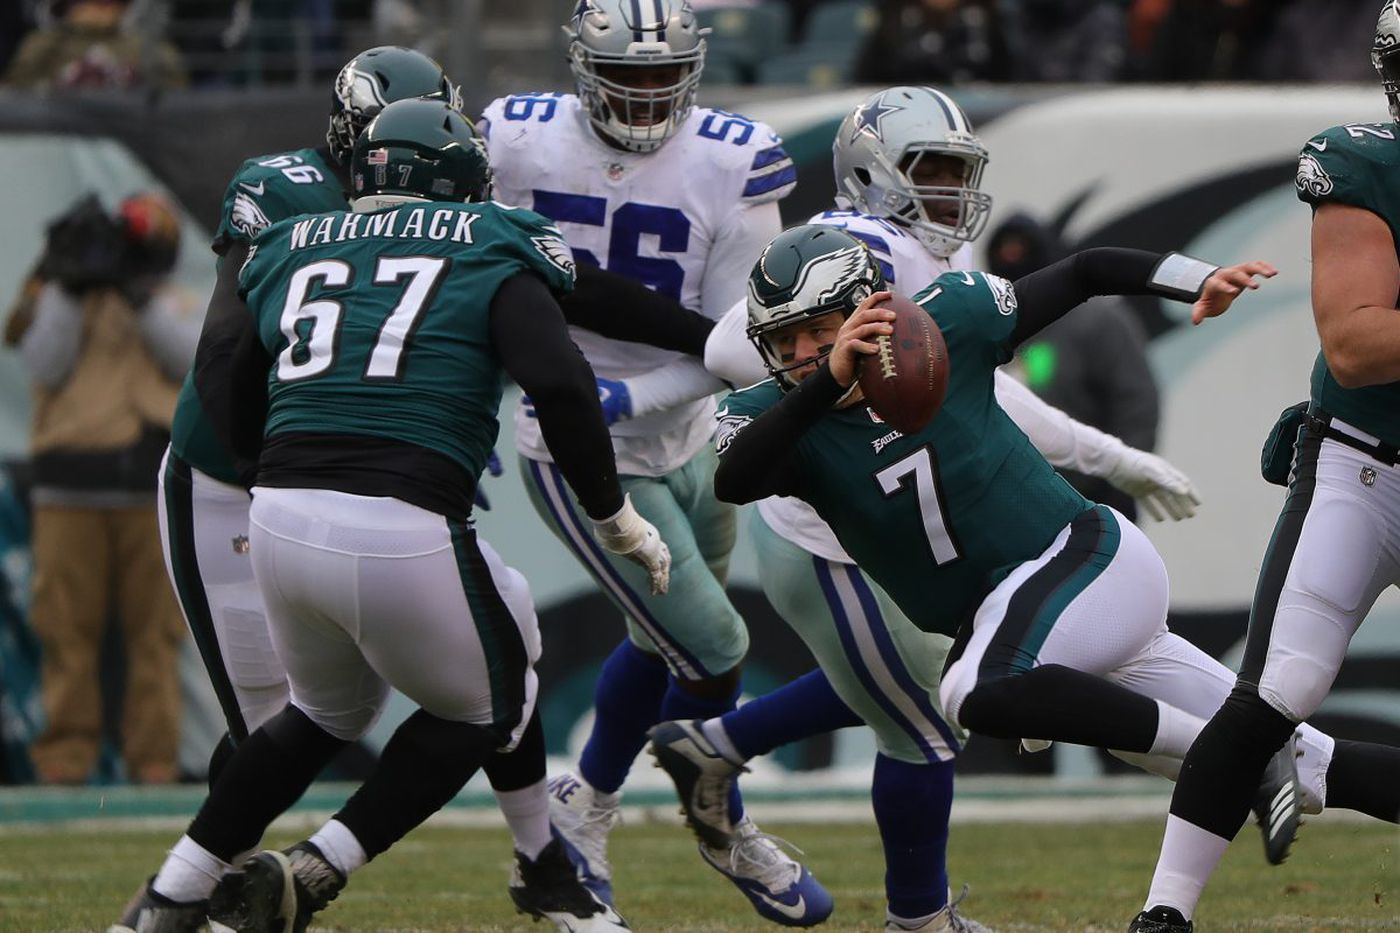 Cowboys 6, Eagles 0: 5 observations on Nick Foles, Nate Sudfeld, Sidney Jones and more | Marcus Hayes